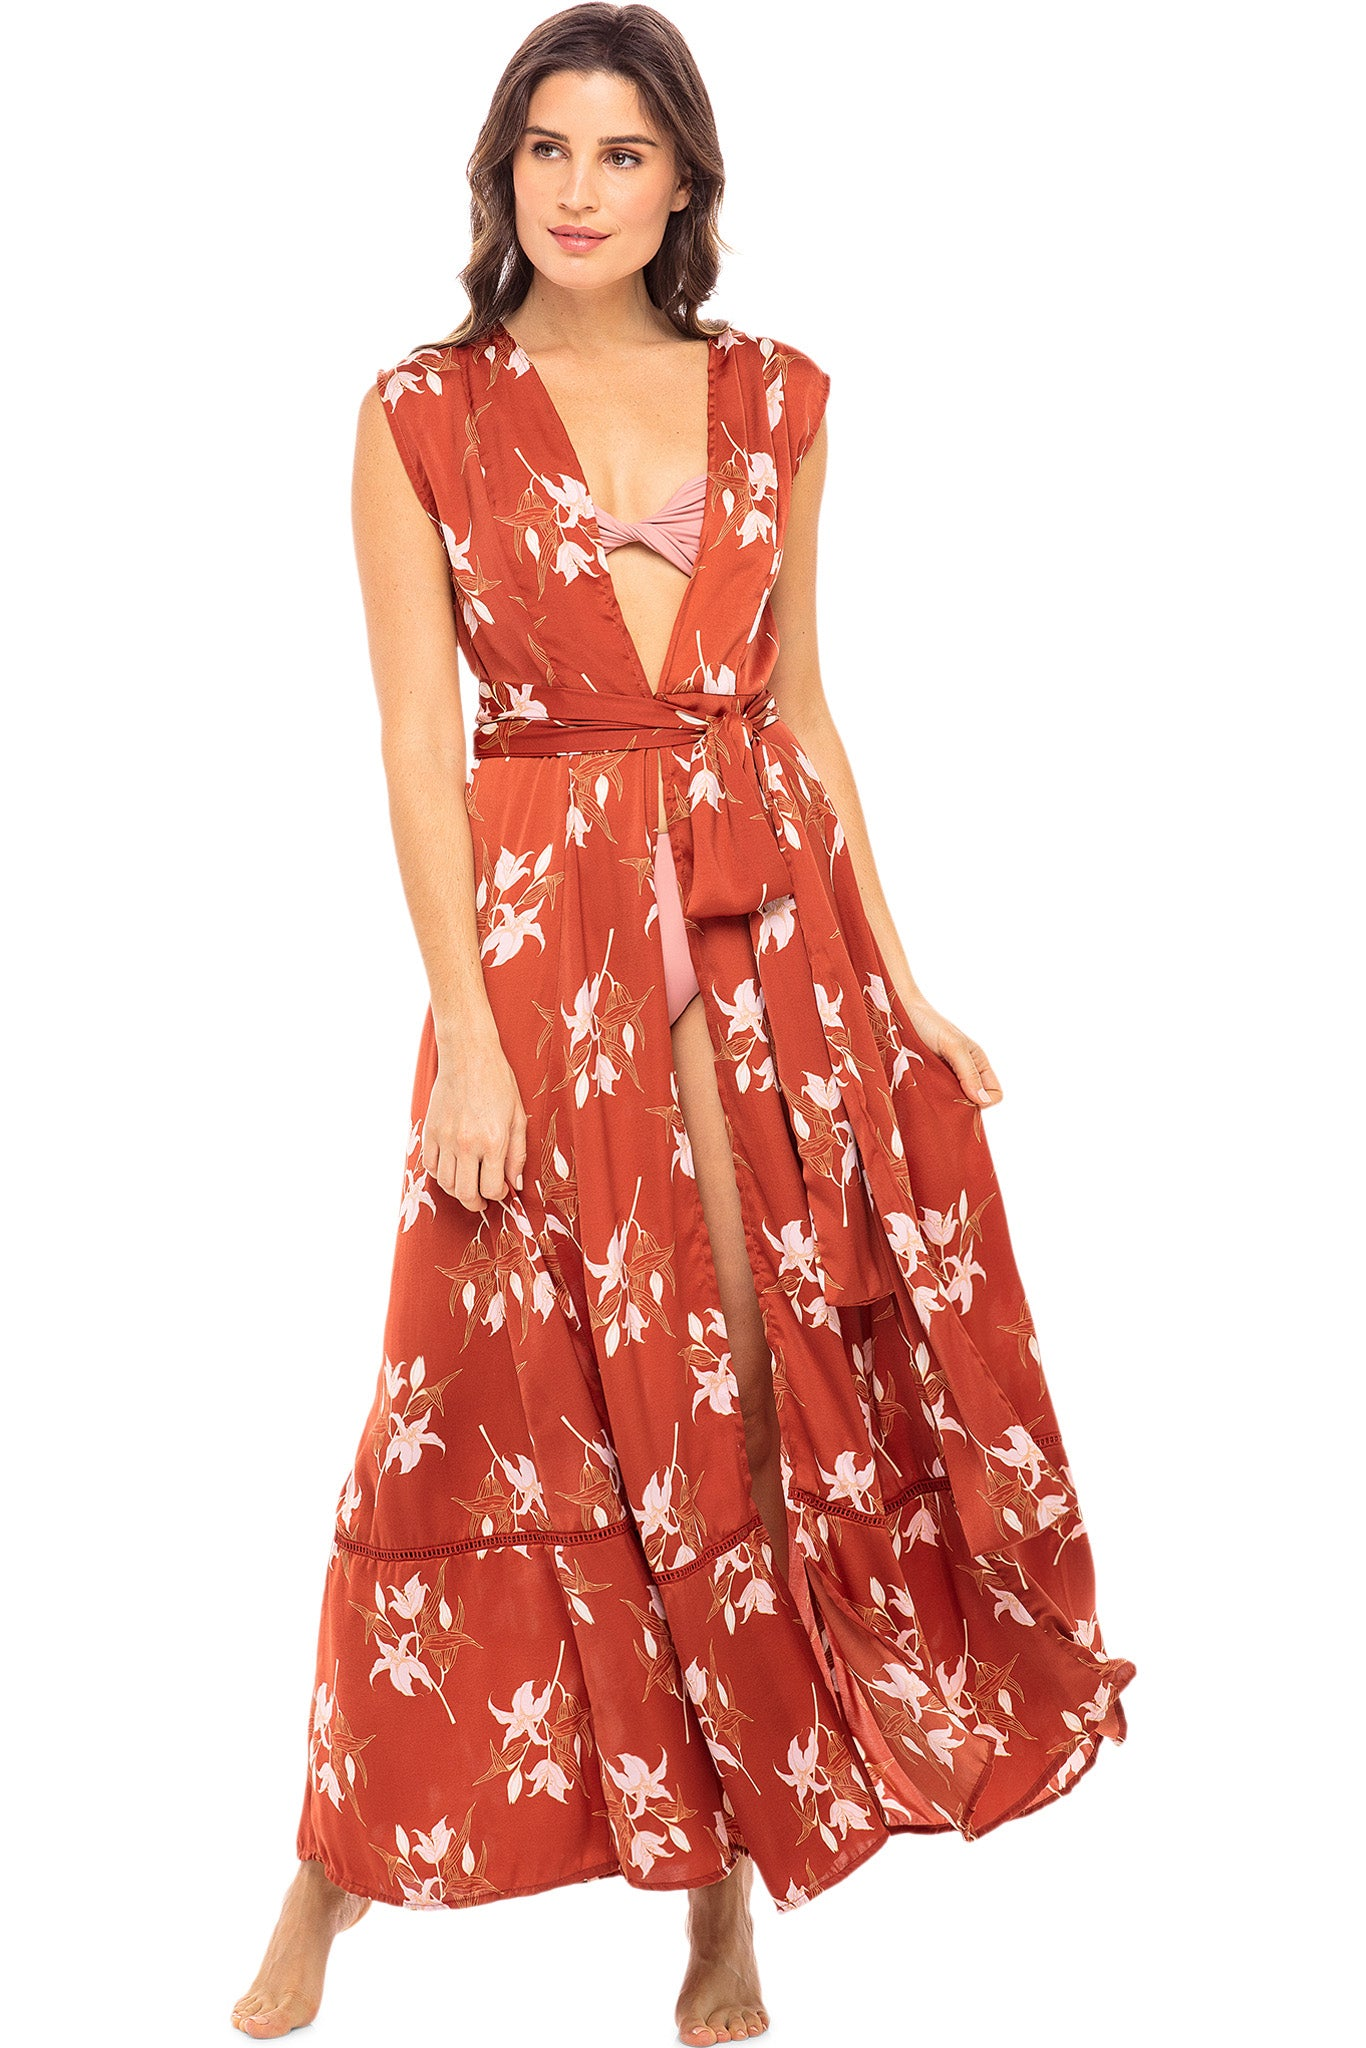 Audrey Sleeveless Duster - Rust Lily